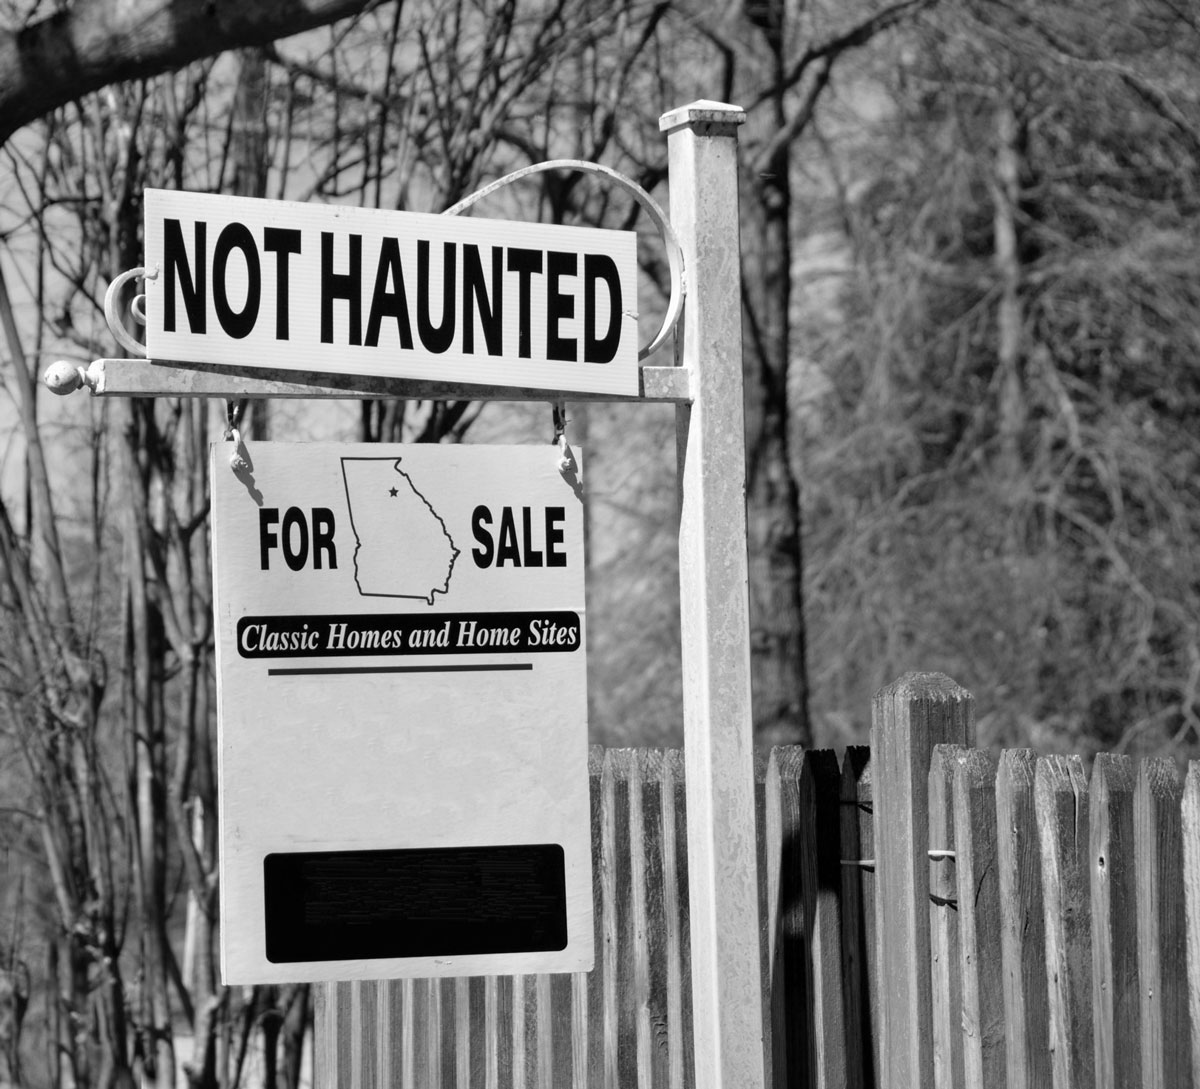 For Sale Sign (not haunted)